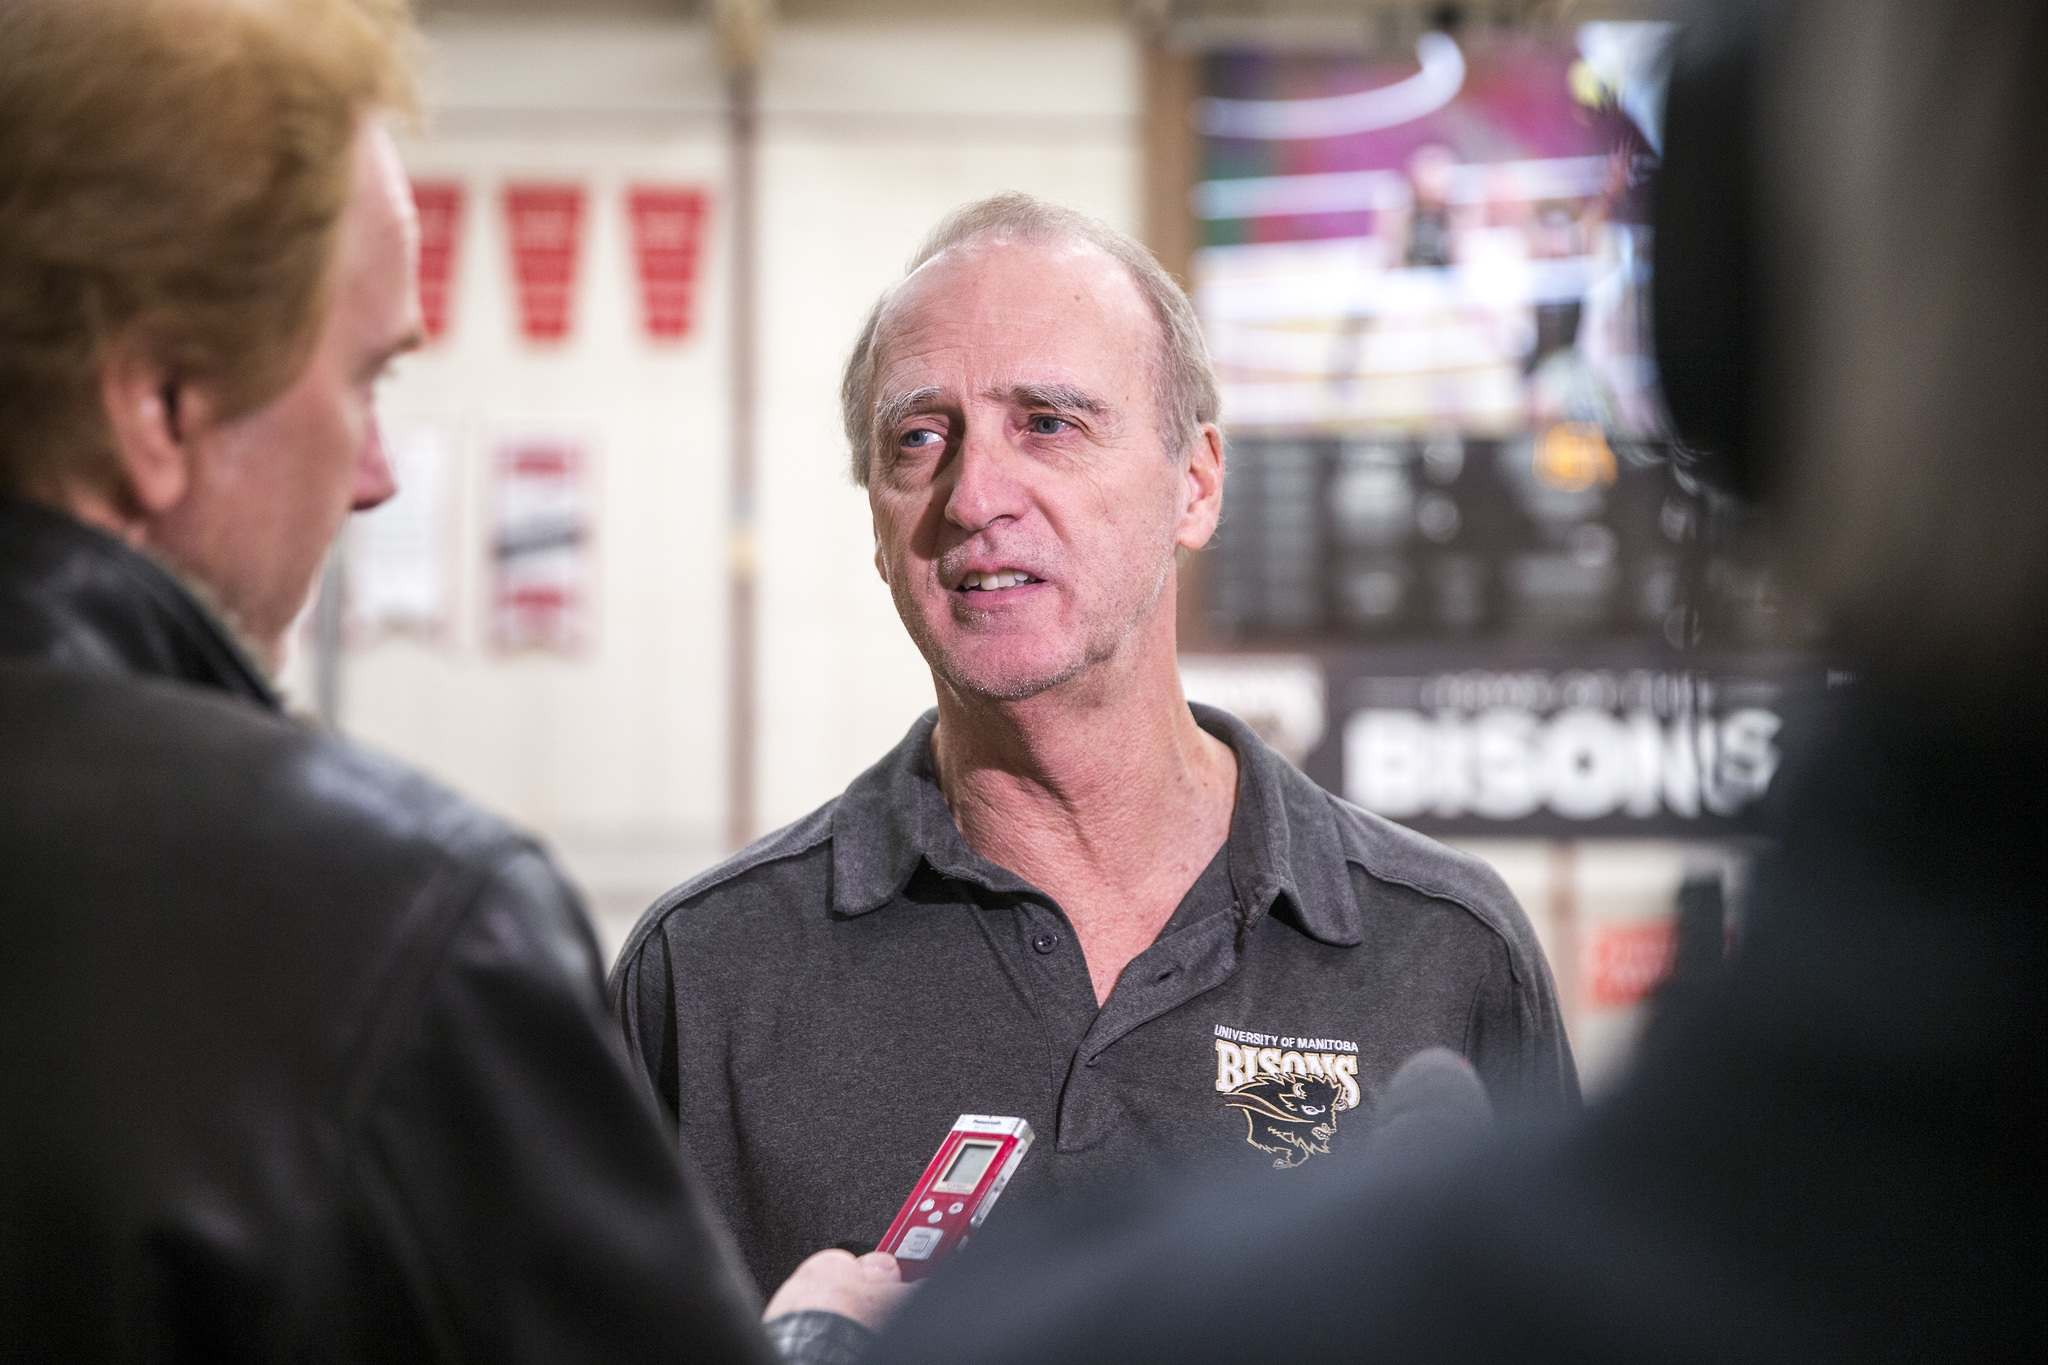 MIKAELA MACKENZIE / WINNIPEG FREE PRESS</p><p>Garth Pischke, head coach of the University of Manitoba men's volleyball team, speaks to media about the cancellation of the men's volleyball championship at the Investors Group Athletic Centre in Winnipeg on Friday.</p>